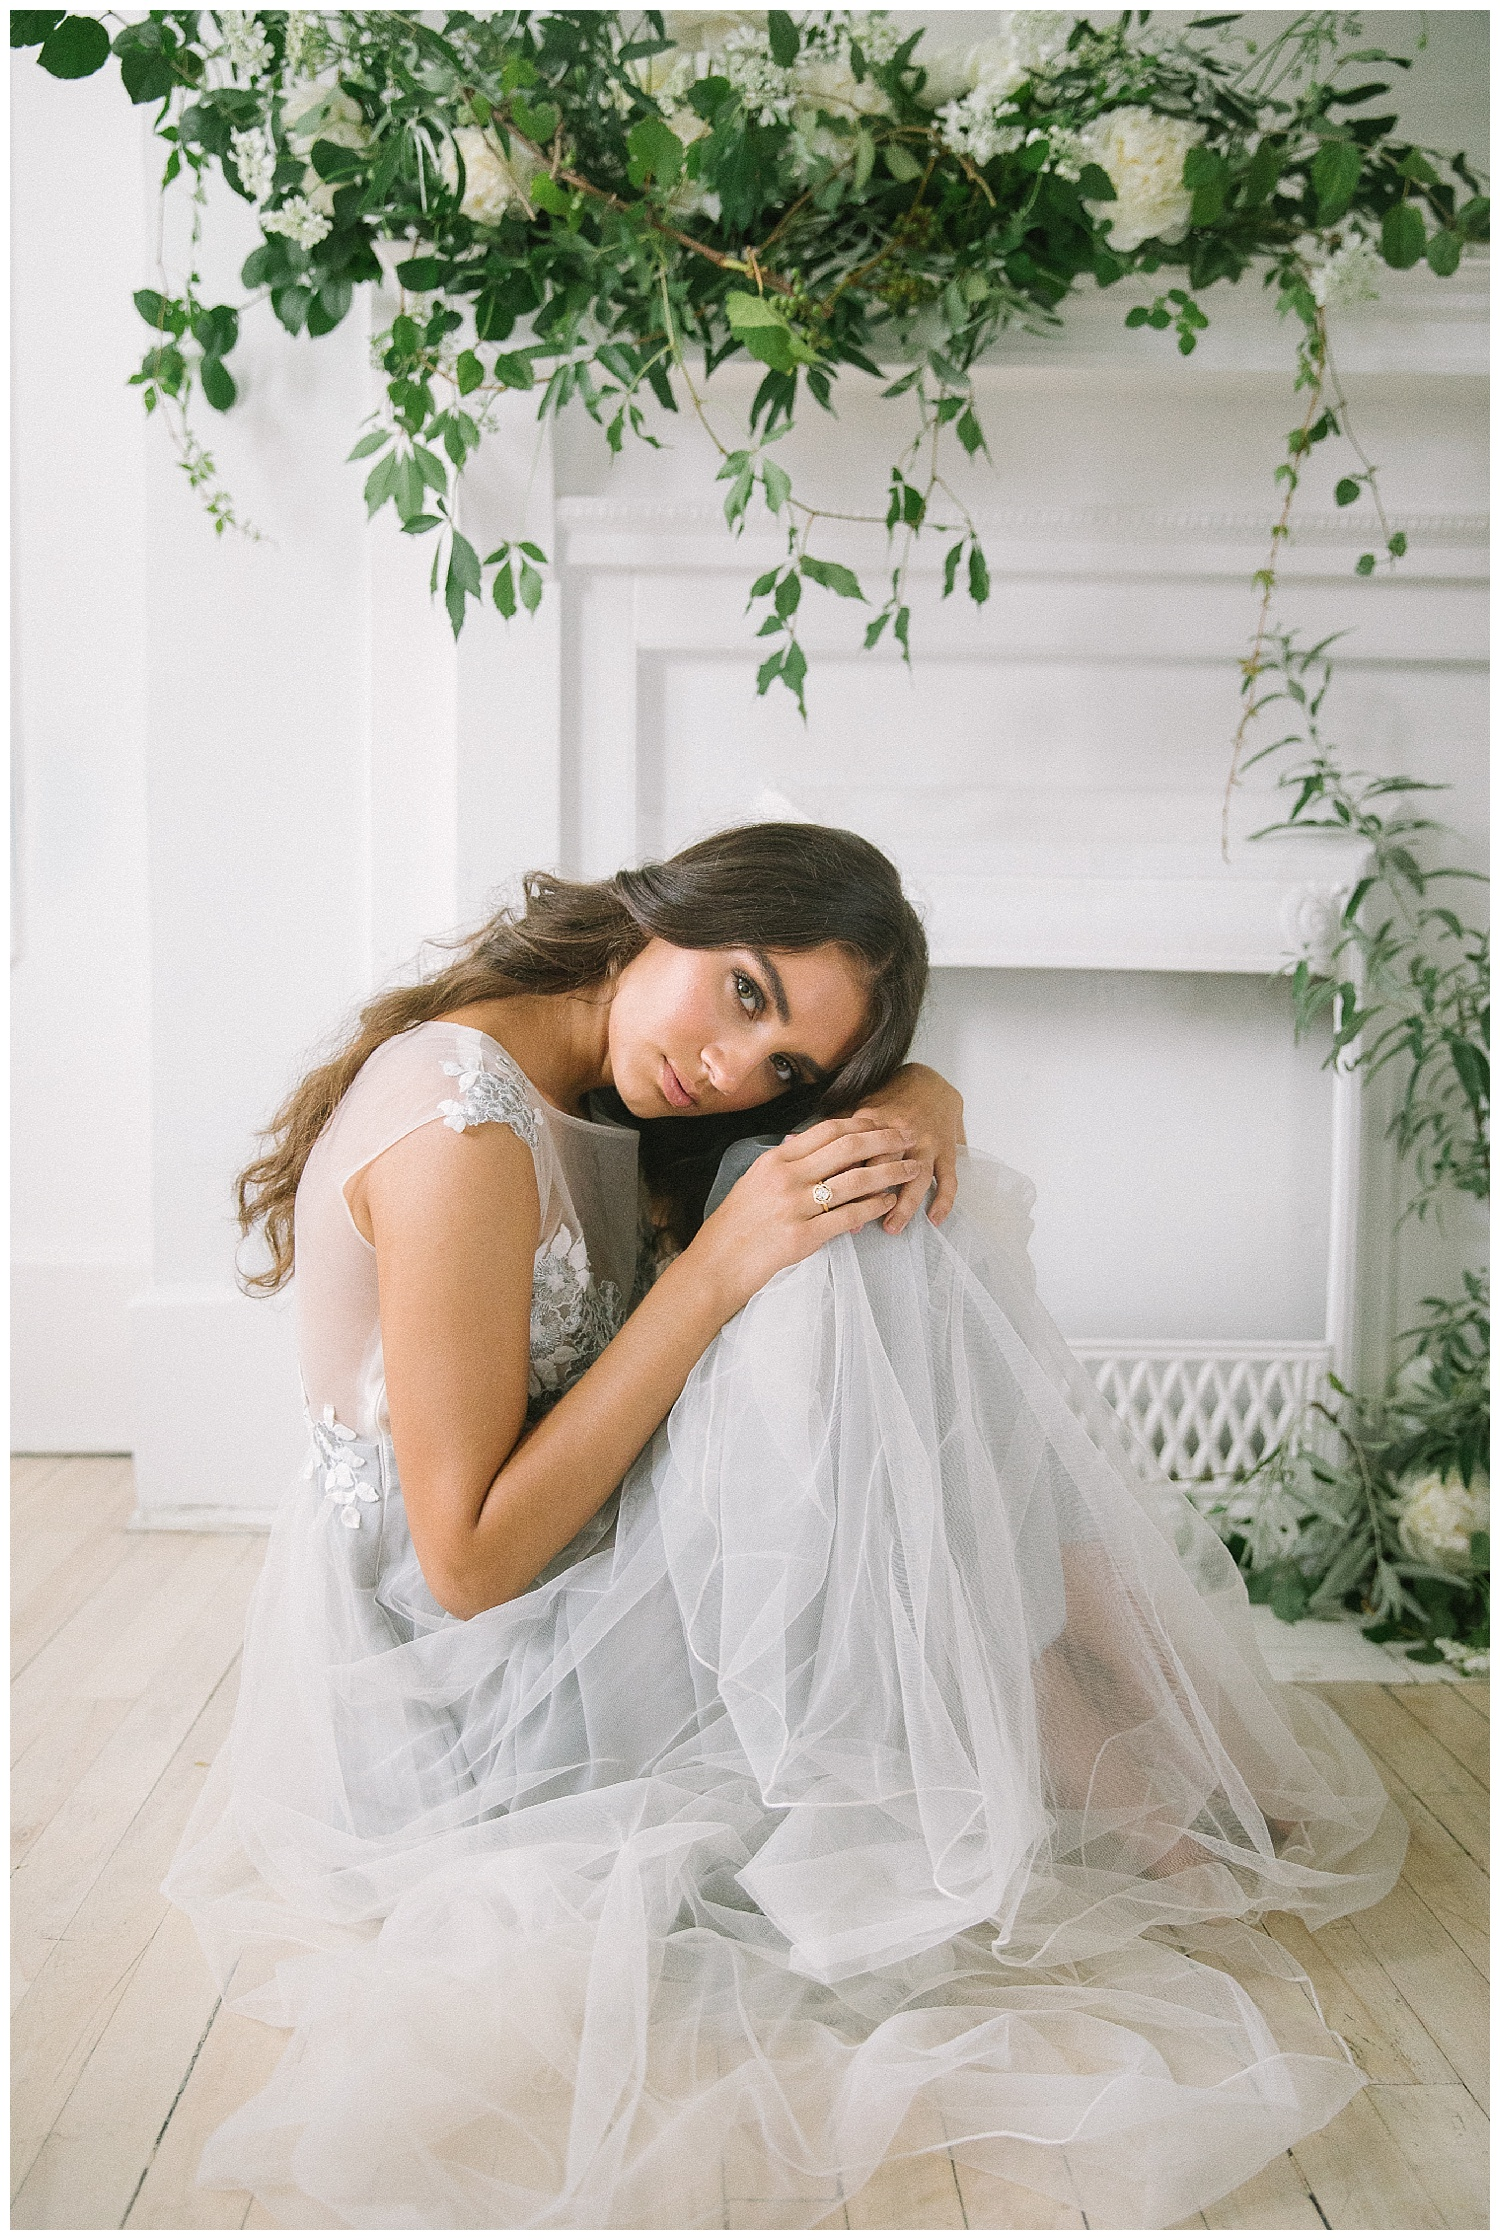 Ellen-Ashton-Photography-Dallas-Wedding-Photographers-Destination-Wedding-Photographer-Paris-Wedding-Photographer-Magnolia-Rouge-Grit-and-Gold-Weddings-and-Events-Destination-Bridal-Session-Montreal-Canada-Montreal-Wedding-Photographer